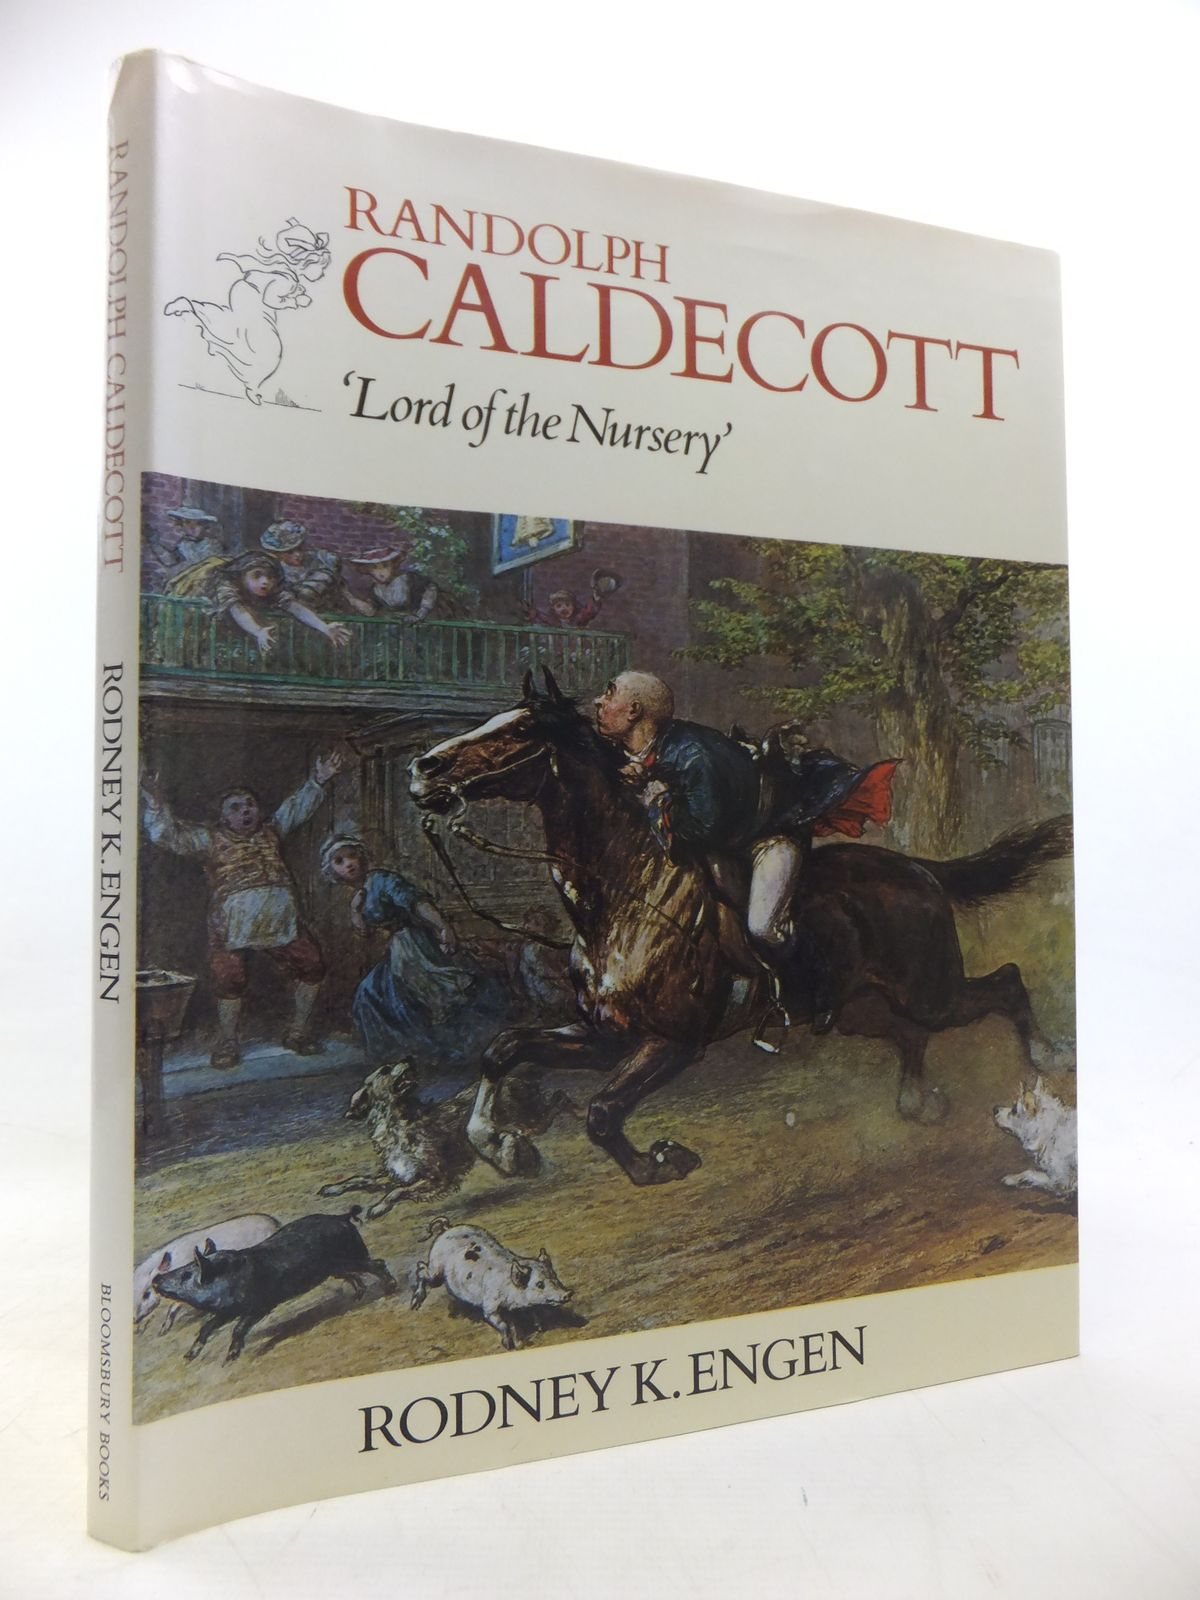 Photo of RANDOLPH CALDECOTT 'LORD OF THE NURSERY' written by Engen, Rodney K. illustrated by Caldecott, Randolph published by Bloomsbury Books (STOCK CODE: 1811257)  for sale by Stella & Rose's Books